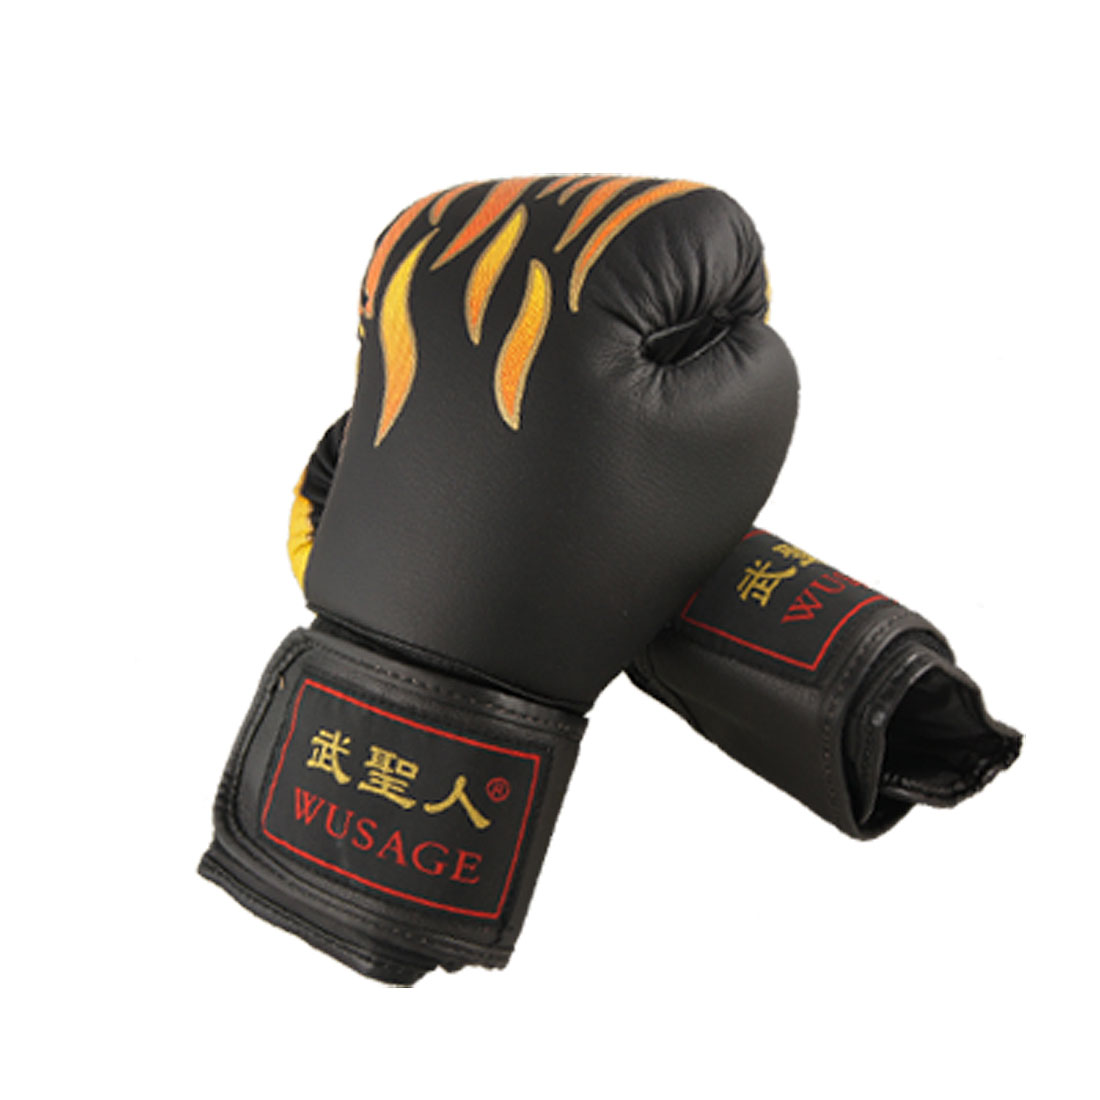 Foam Padded Fire Flame Boxing Training Gloves Black